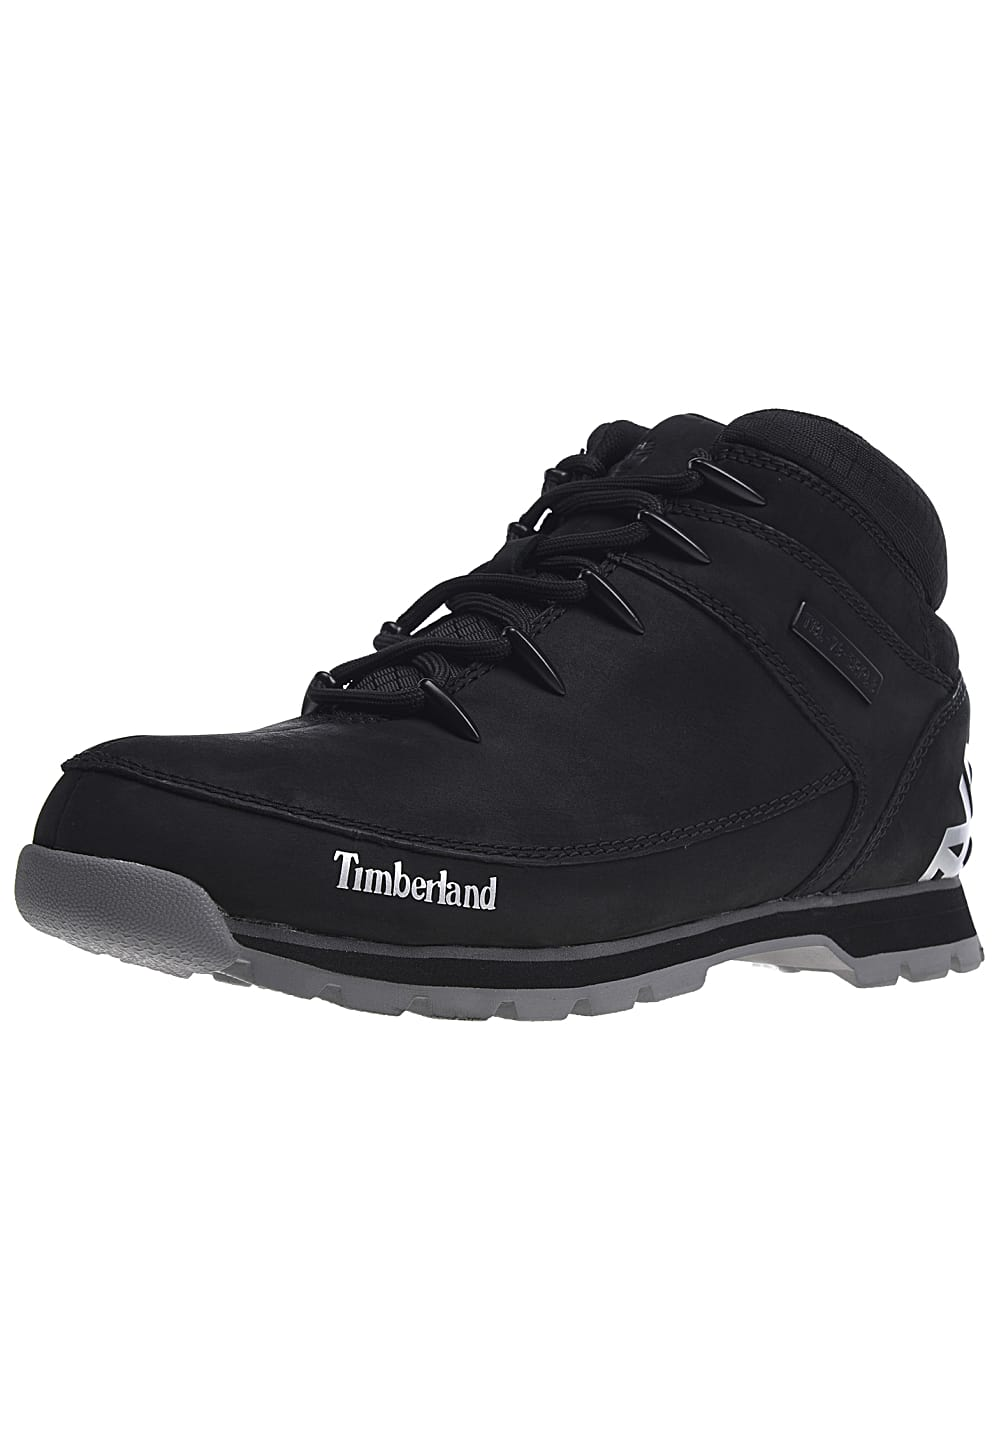 TIMBERLAND Euro Sprint Hiker - Boots for Men - Black - Planet Sports 8aa1130951